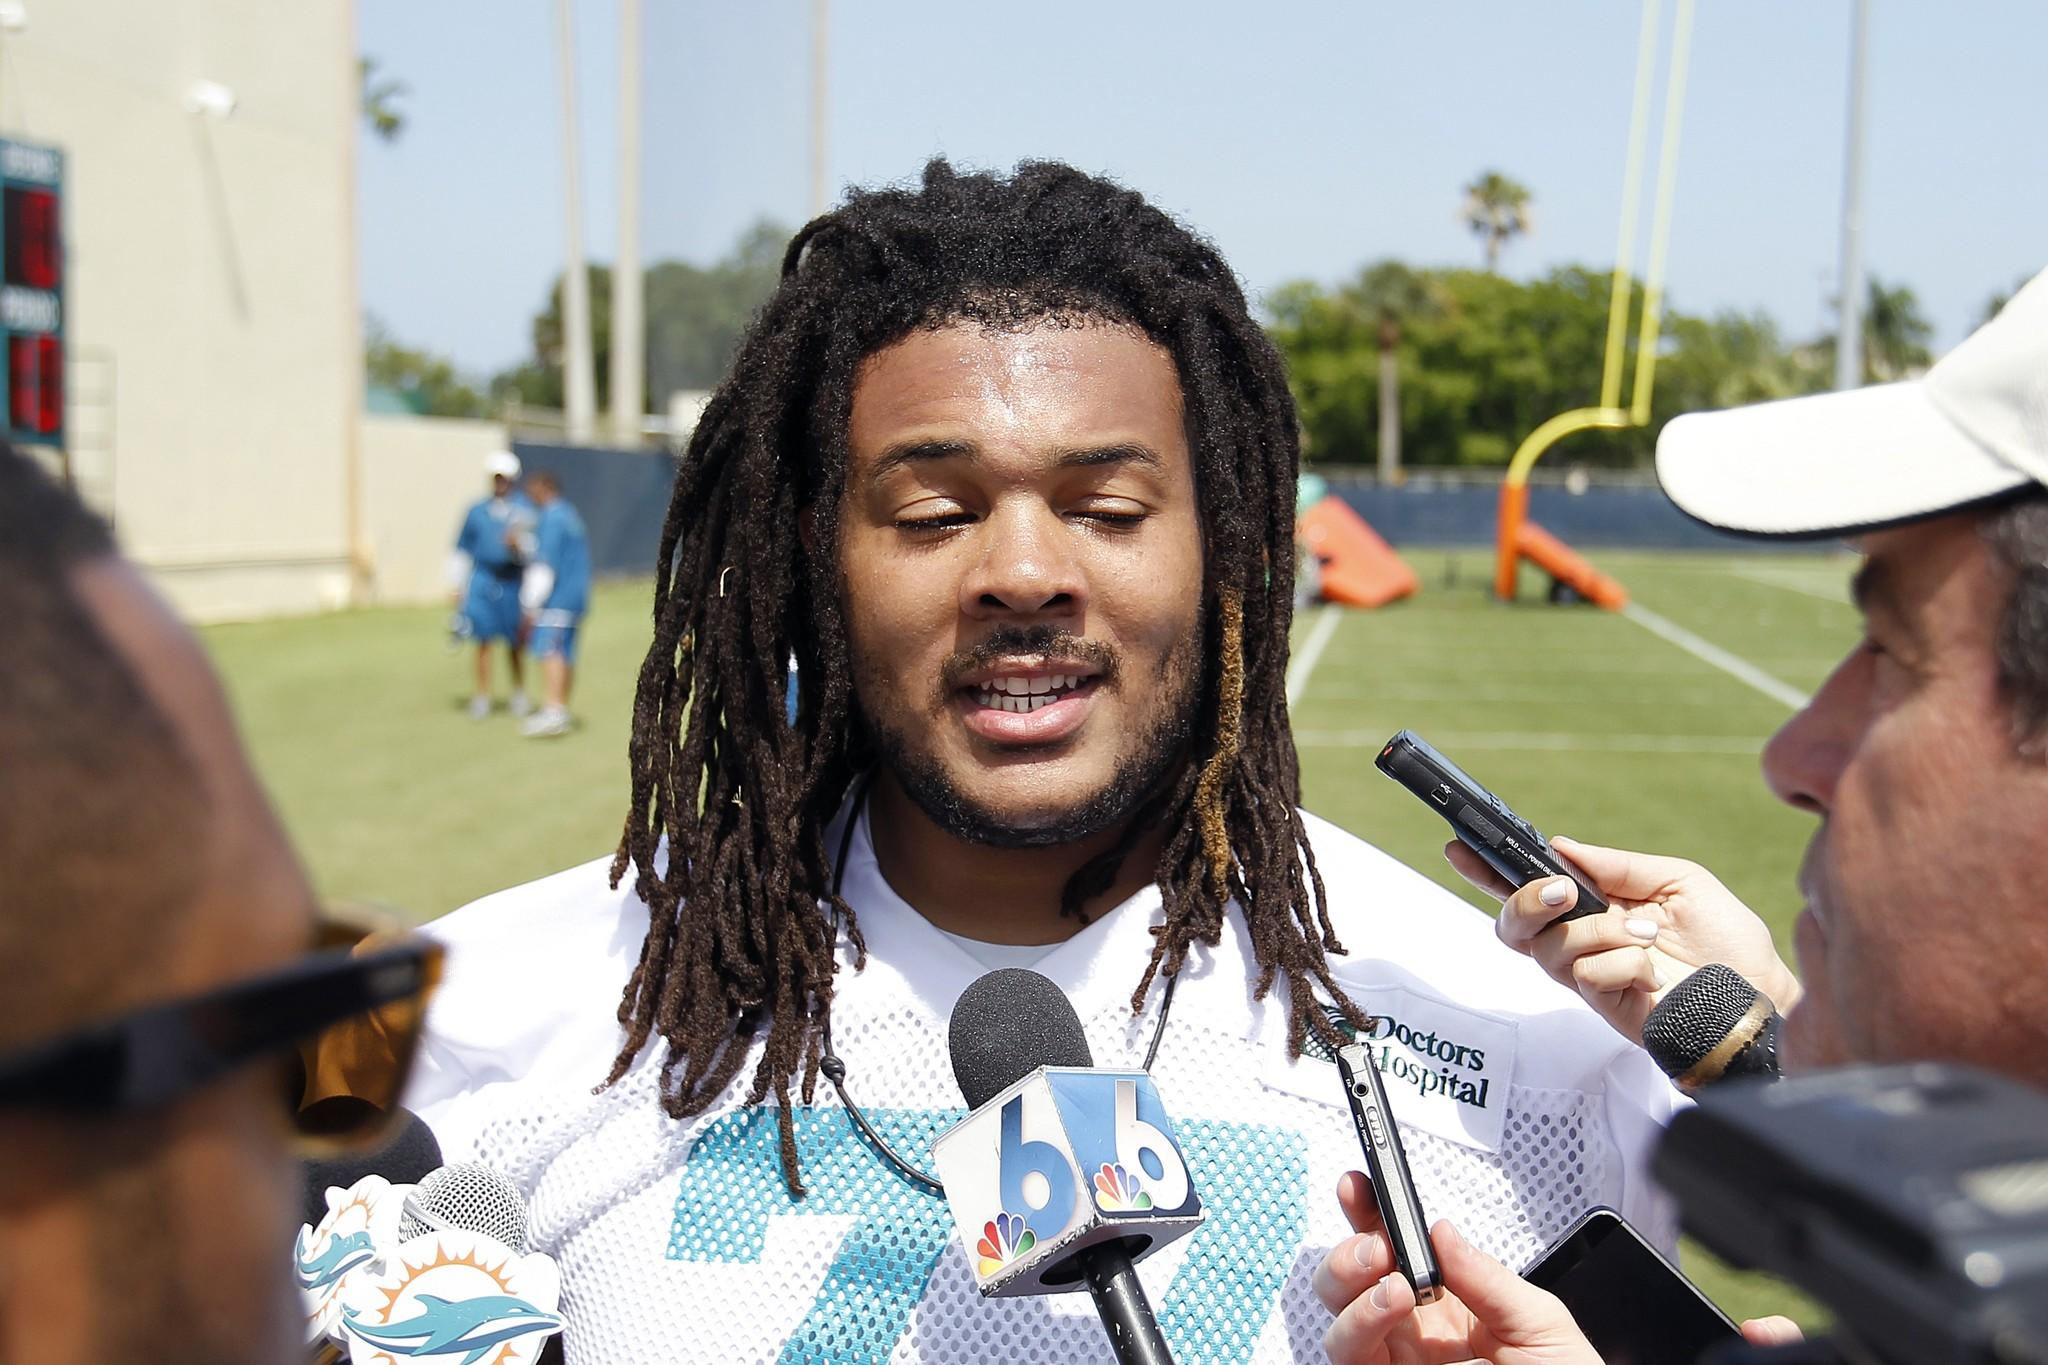 Billy Turner #77 of the Miami Dolphins talks to the media after the rookie minicamp on May 23, 2014 at the Miami Dolphins training facility in Davie, Florida.